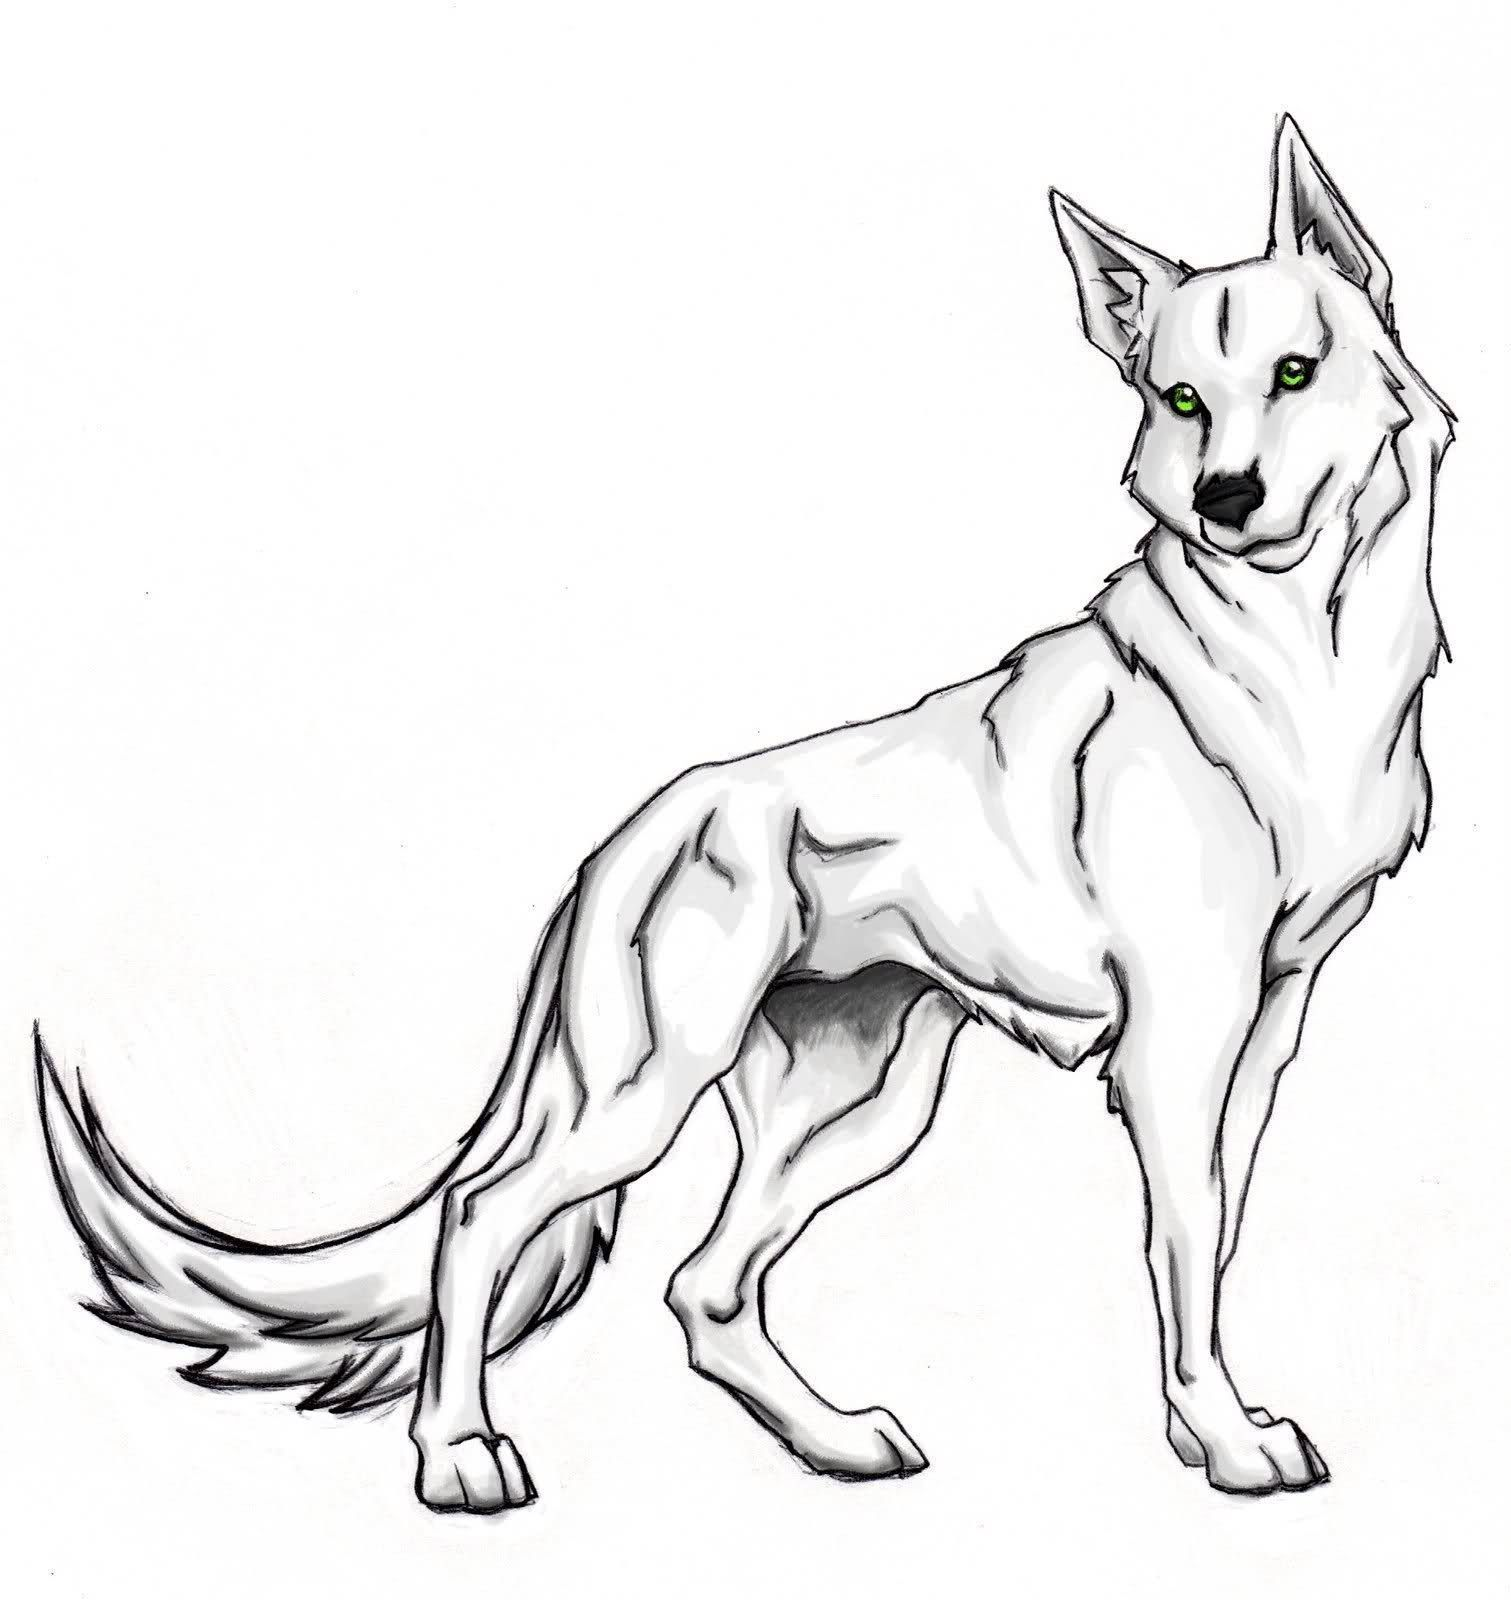 Wolf Coloring Pages For Kids Cute Wolf Coloring Page 1381 Coloring Cute Kids Page Pages W In 2020 Wolf Colors Animal Coloring Pages Coloring Pages For Teenagers